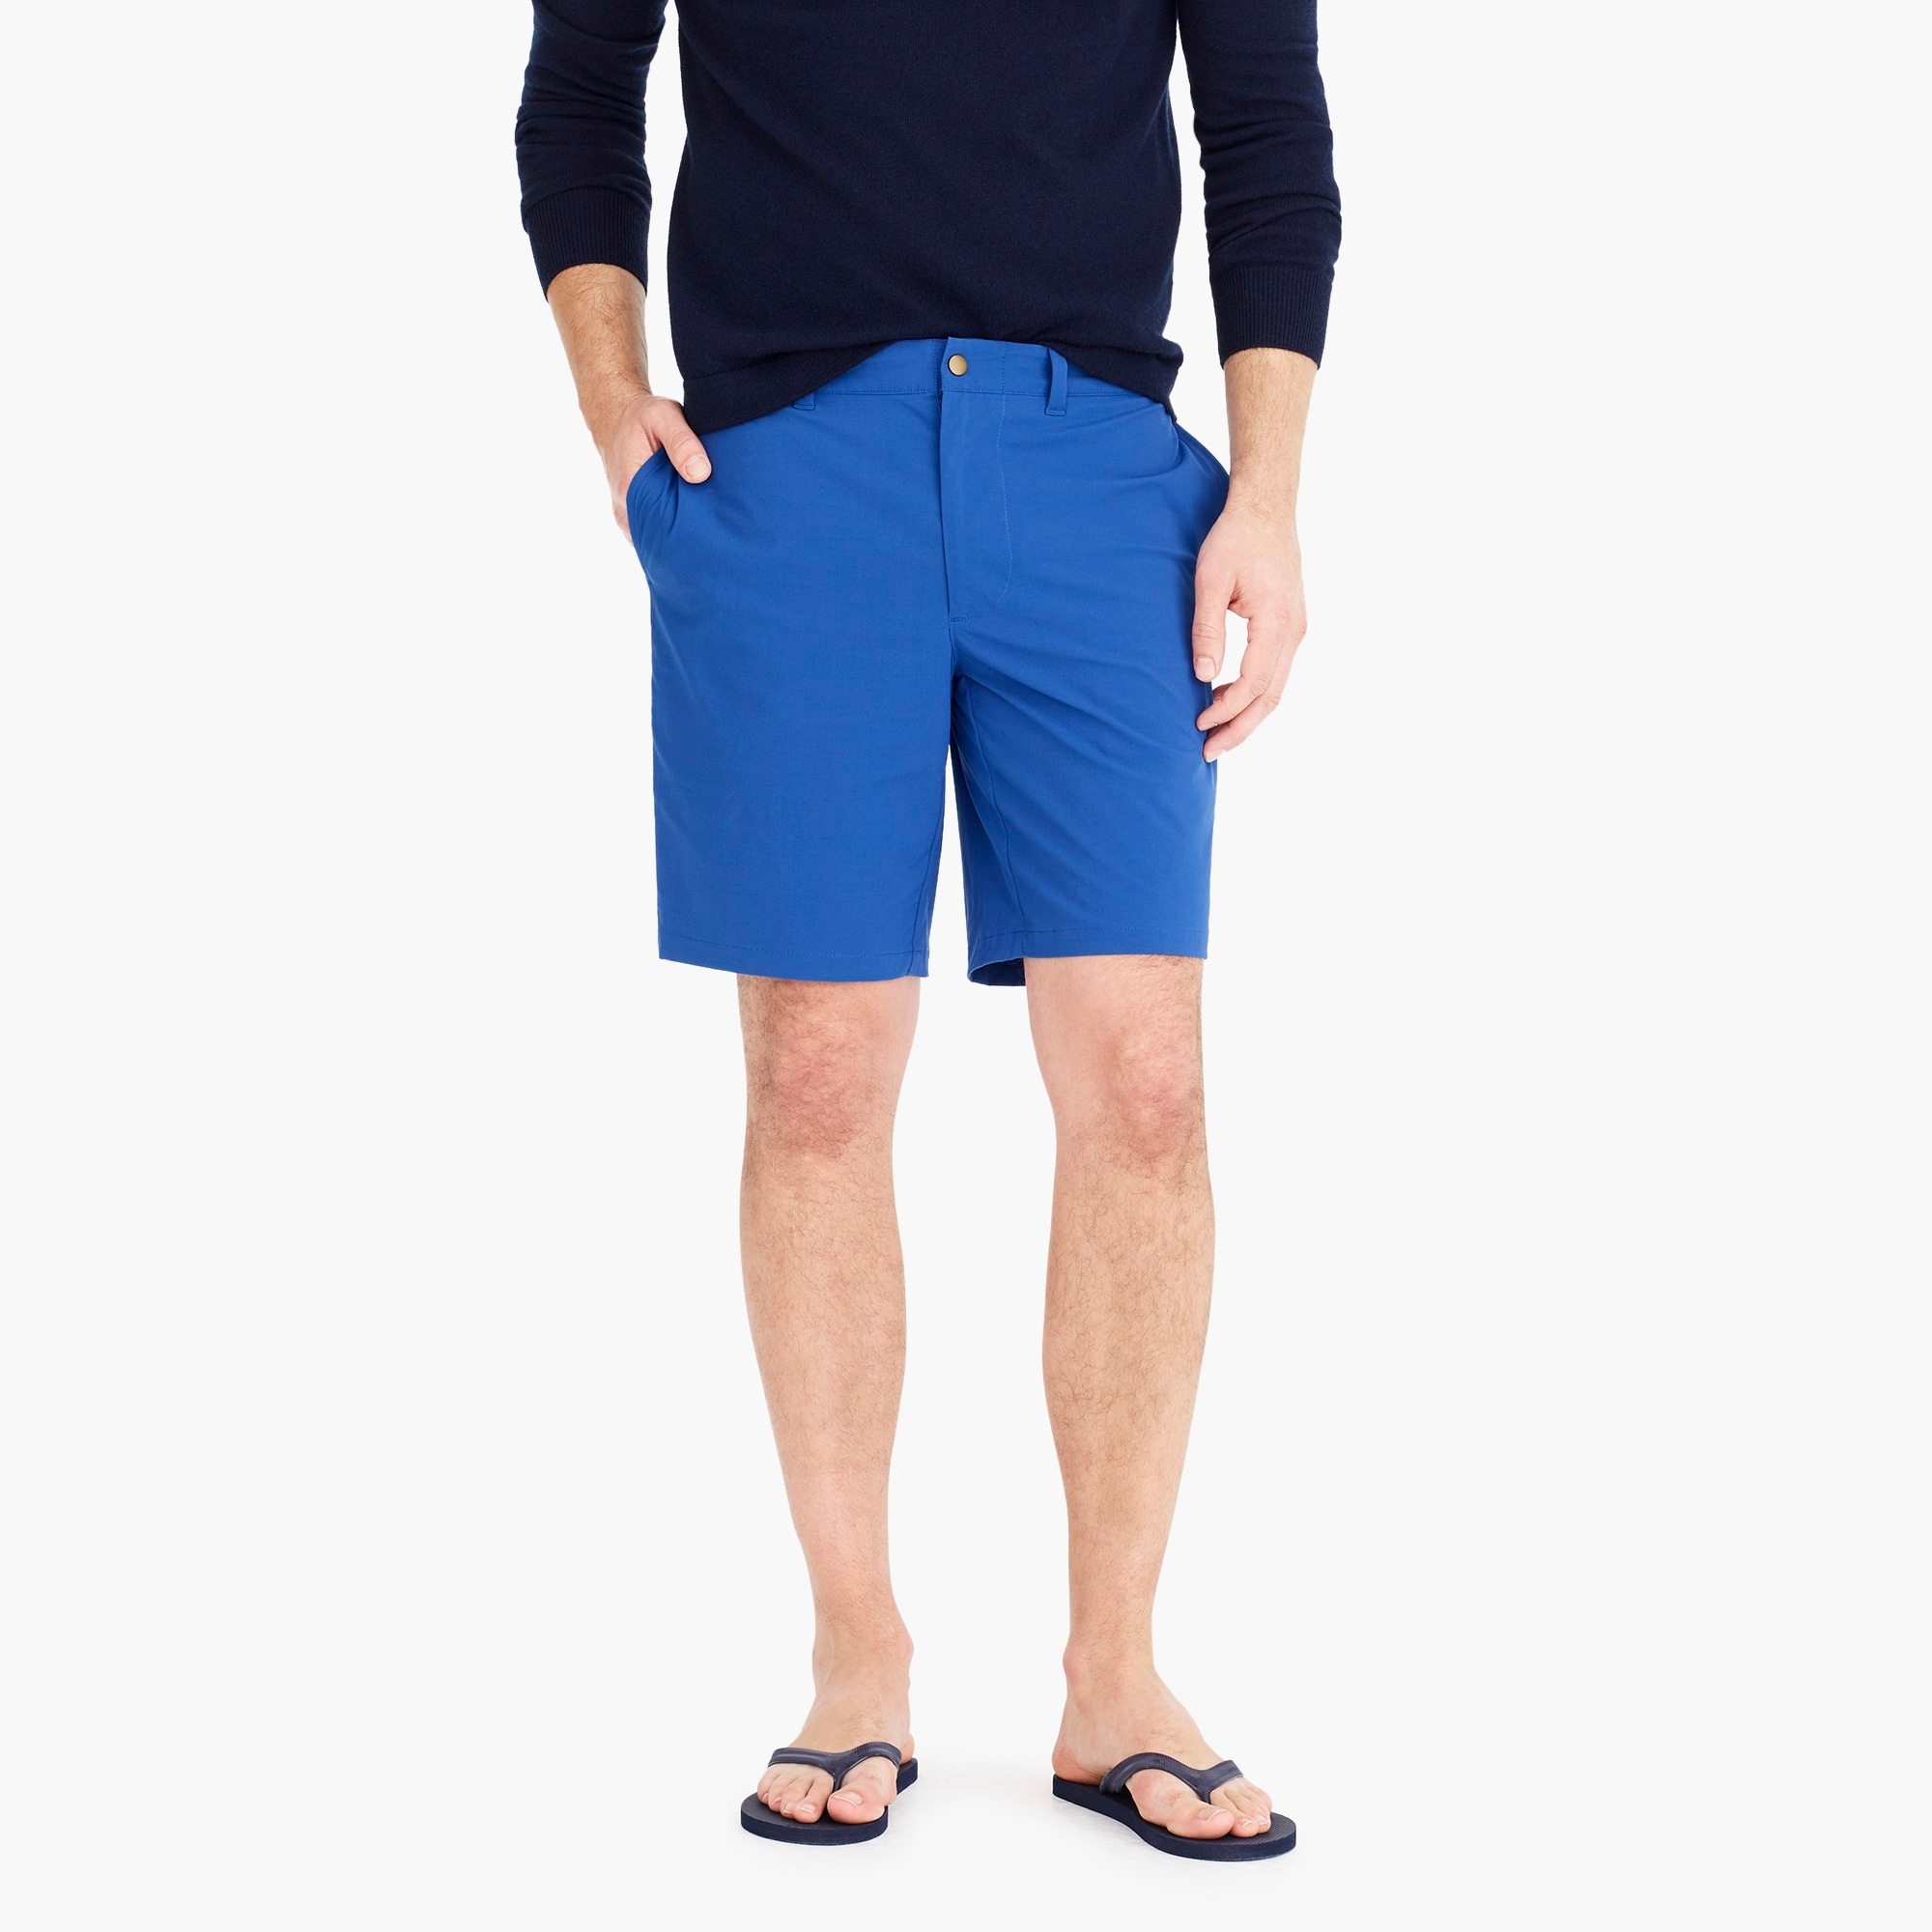 9 tech short - men's shorts